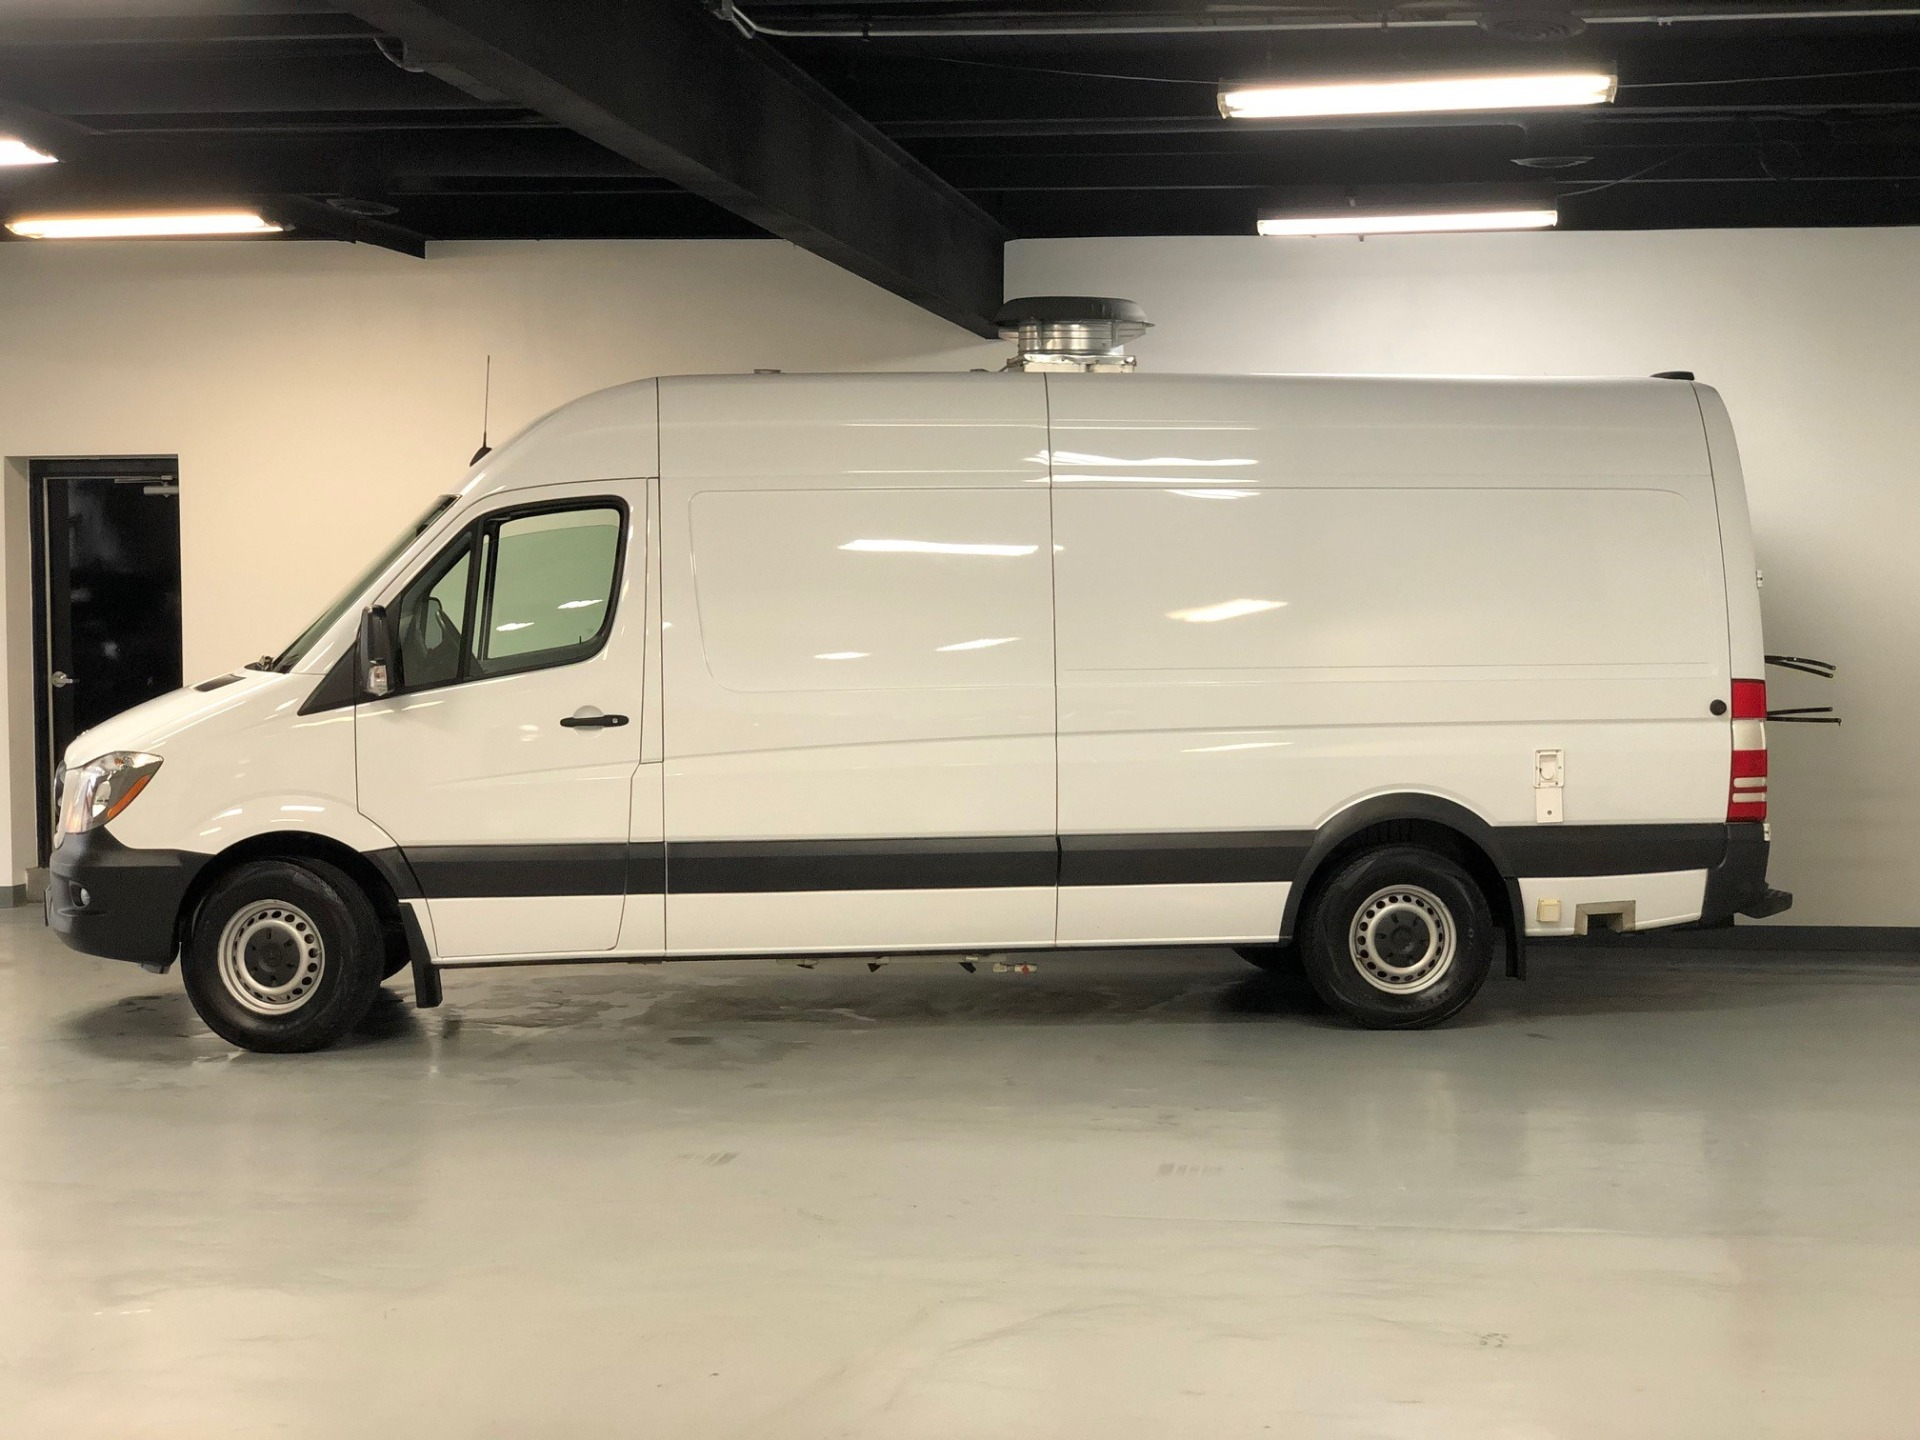 Used 2014 Arctic White Mercedes Benz Sprinter Food Truck Mobile Kitchen 2500 Extended Raised Roof For Sale Sold Prime Motorz Stock 2742